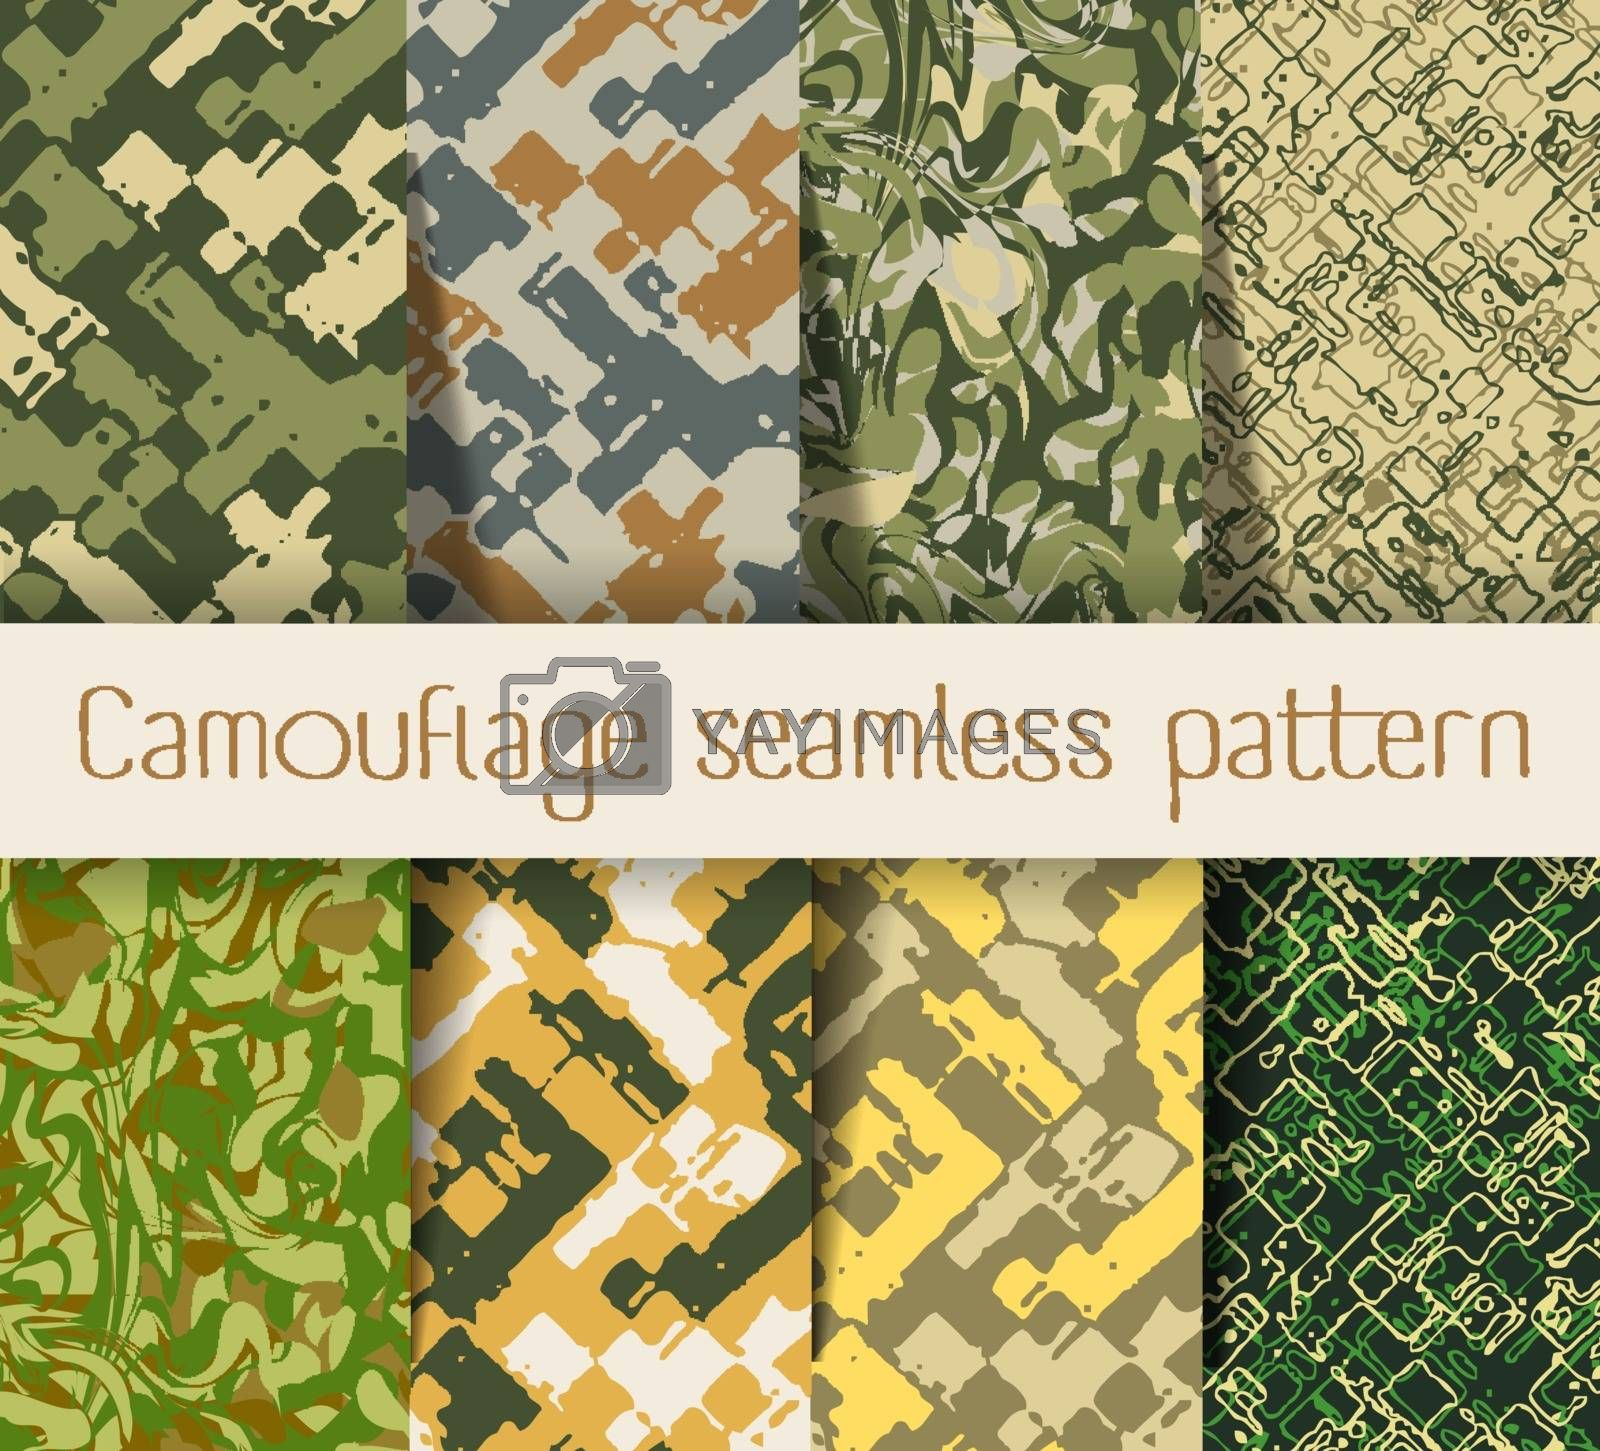 Camouflage seamless pattern. Military Army camouflage pattern design